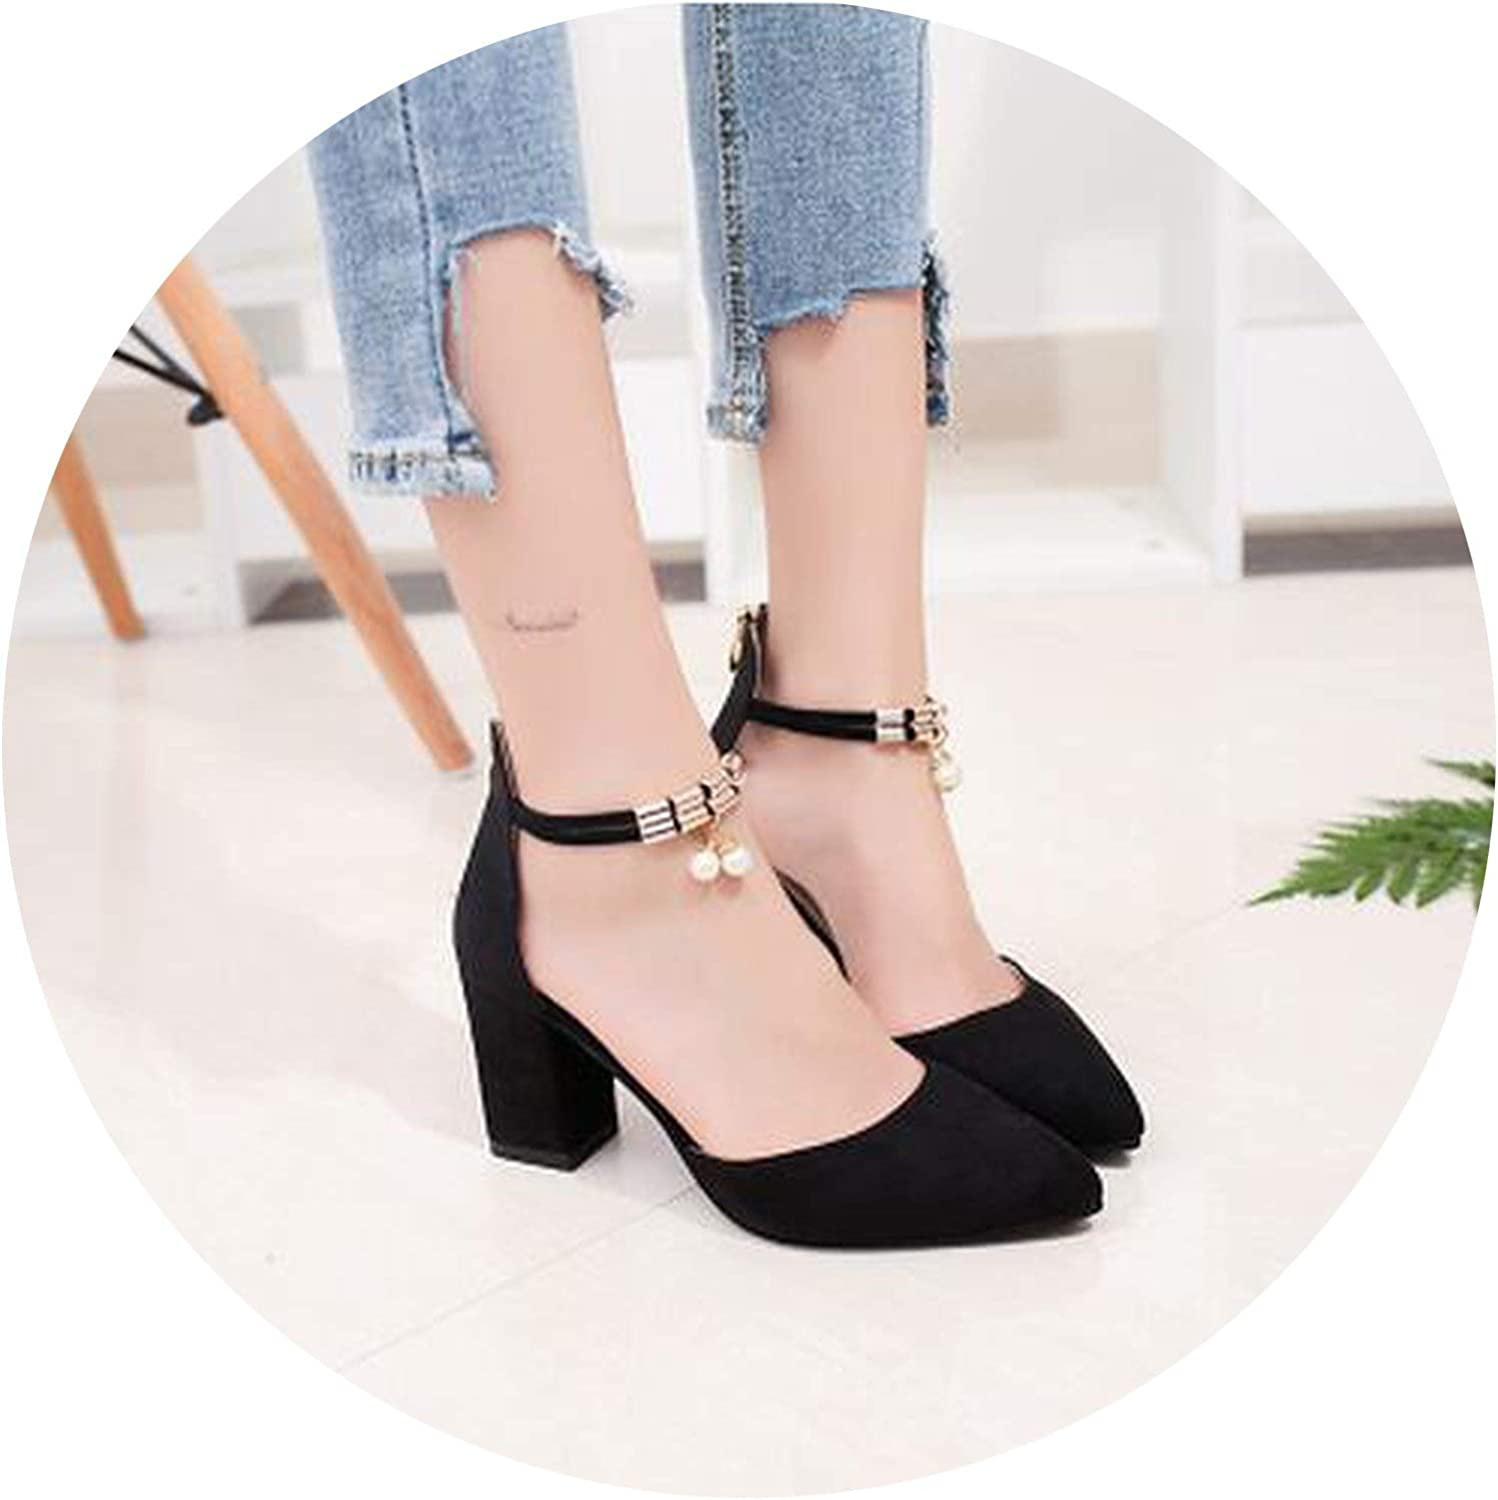 Coolemon HOT Summer Women shoes Side with Pointed Toe Pumps Dress shoes High Heels Boat shoes Wedding shoes Tenis Feminino Sandals  A08,Black 7cm,40